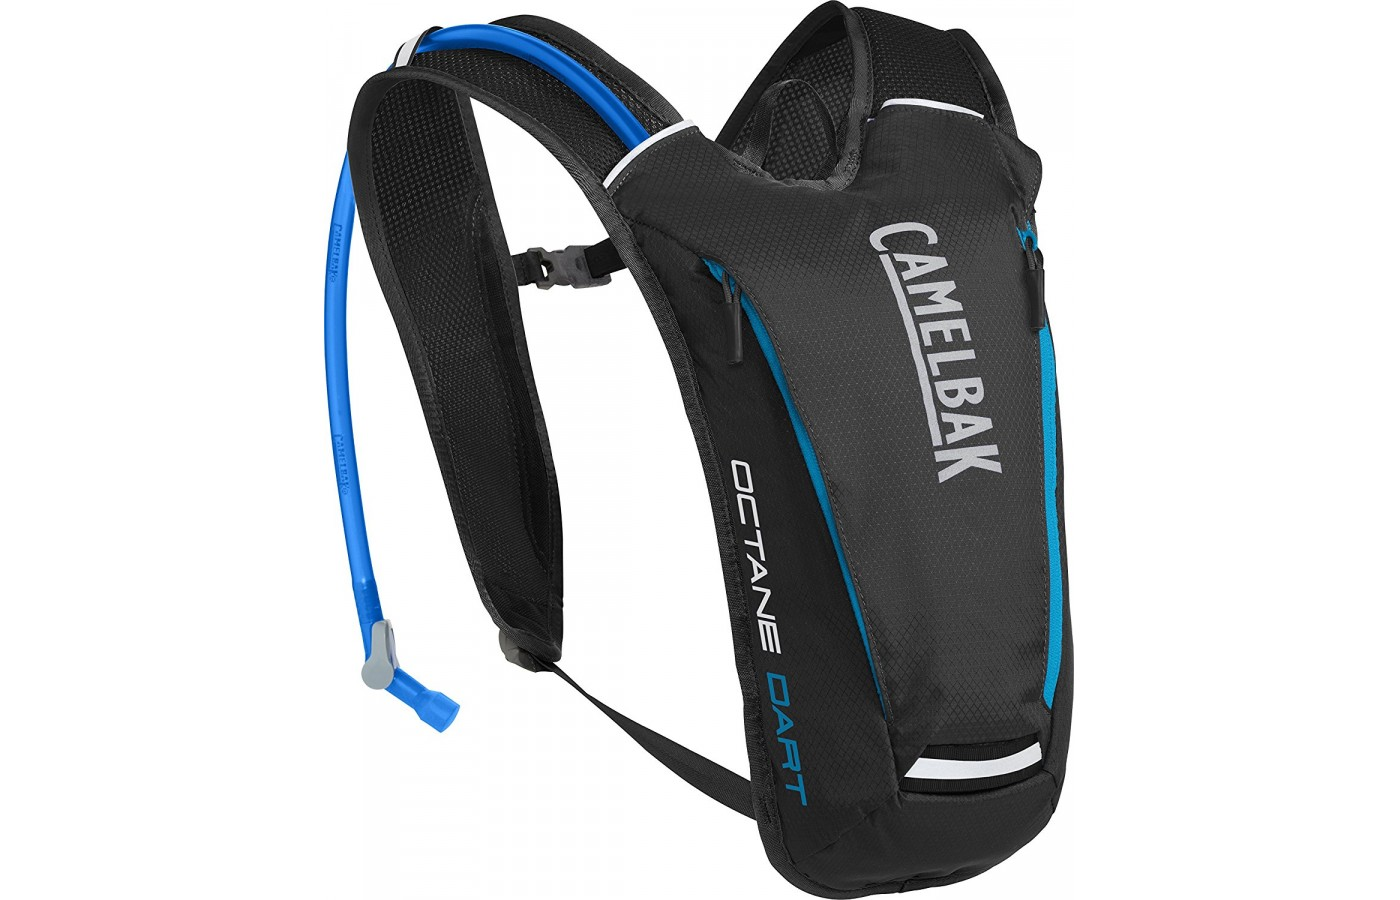 Three quarter view of the Camelbak Octane Dart Hydration pack in black